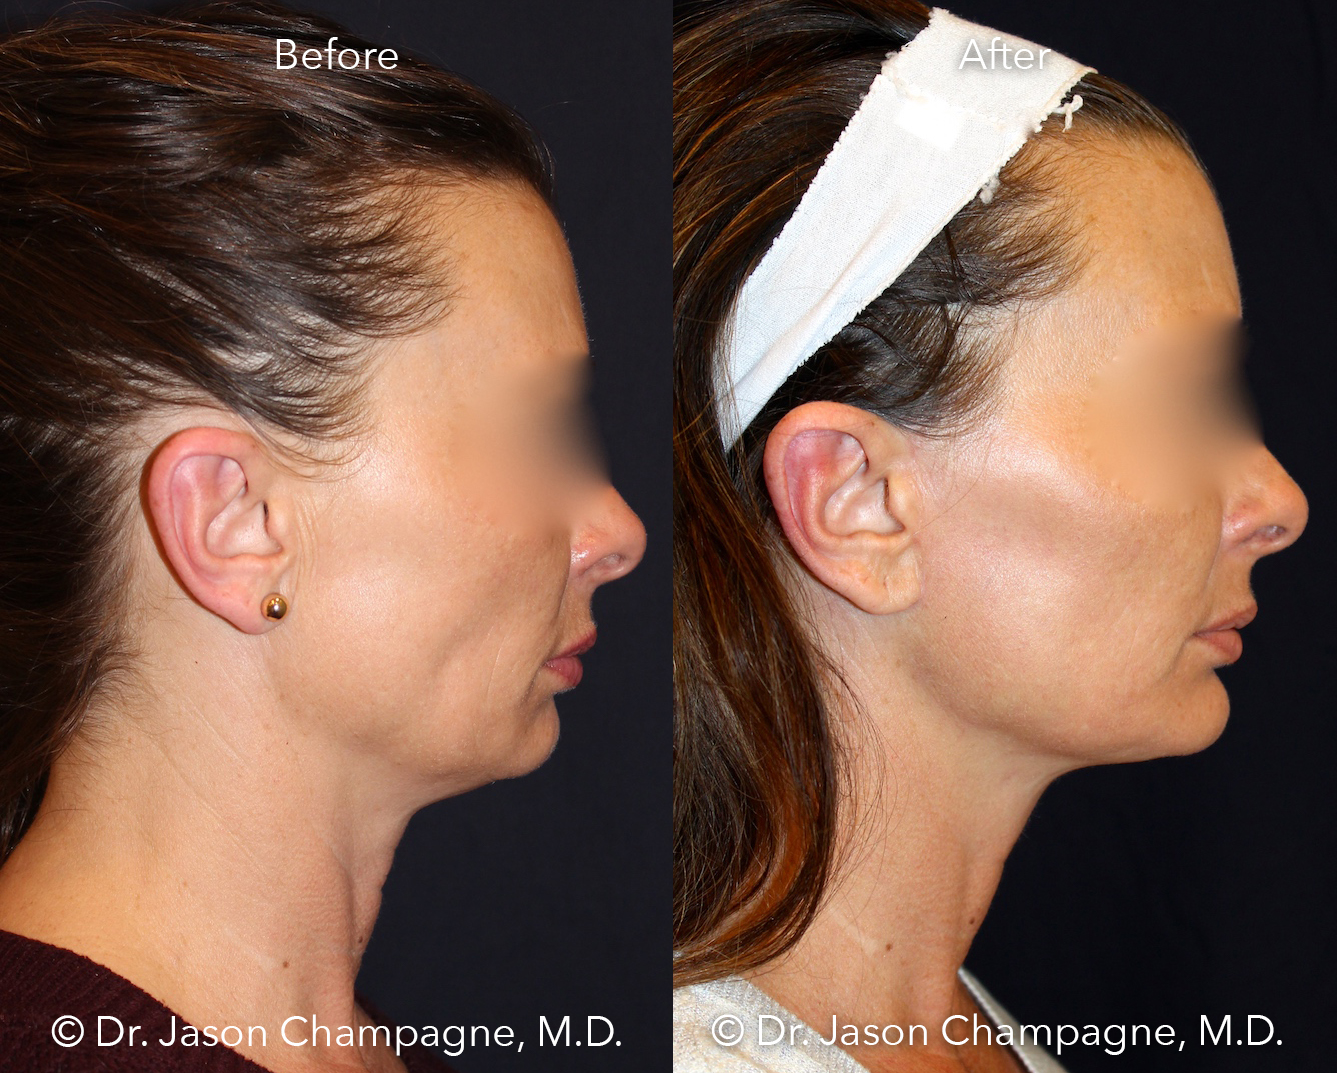 Dr-Jason-Champagne-mini-facelift-necklift-chin-implant-CO2 laser-skin-resurfacing-Before-and-After-Profile.jpg